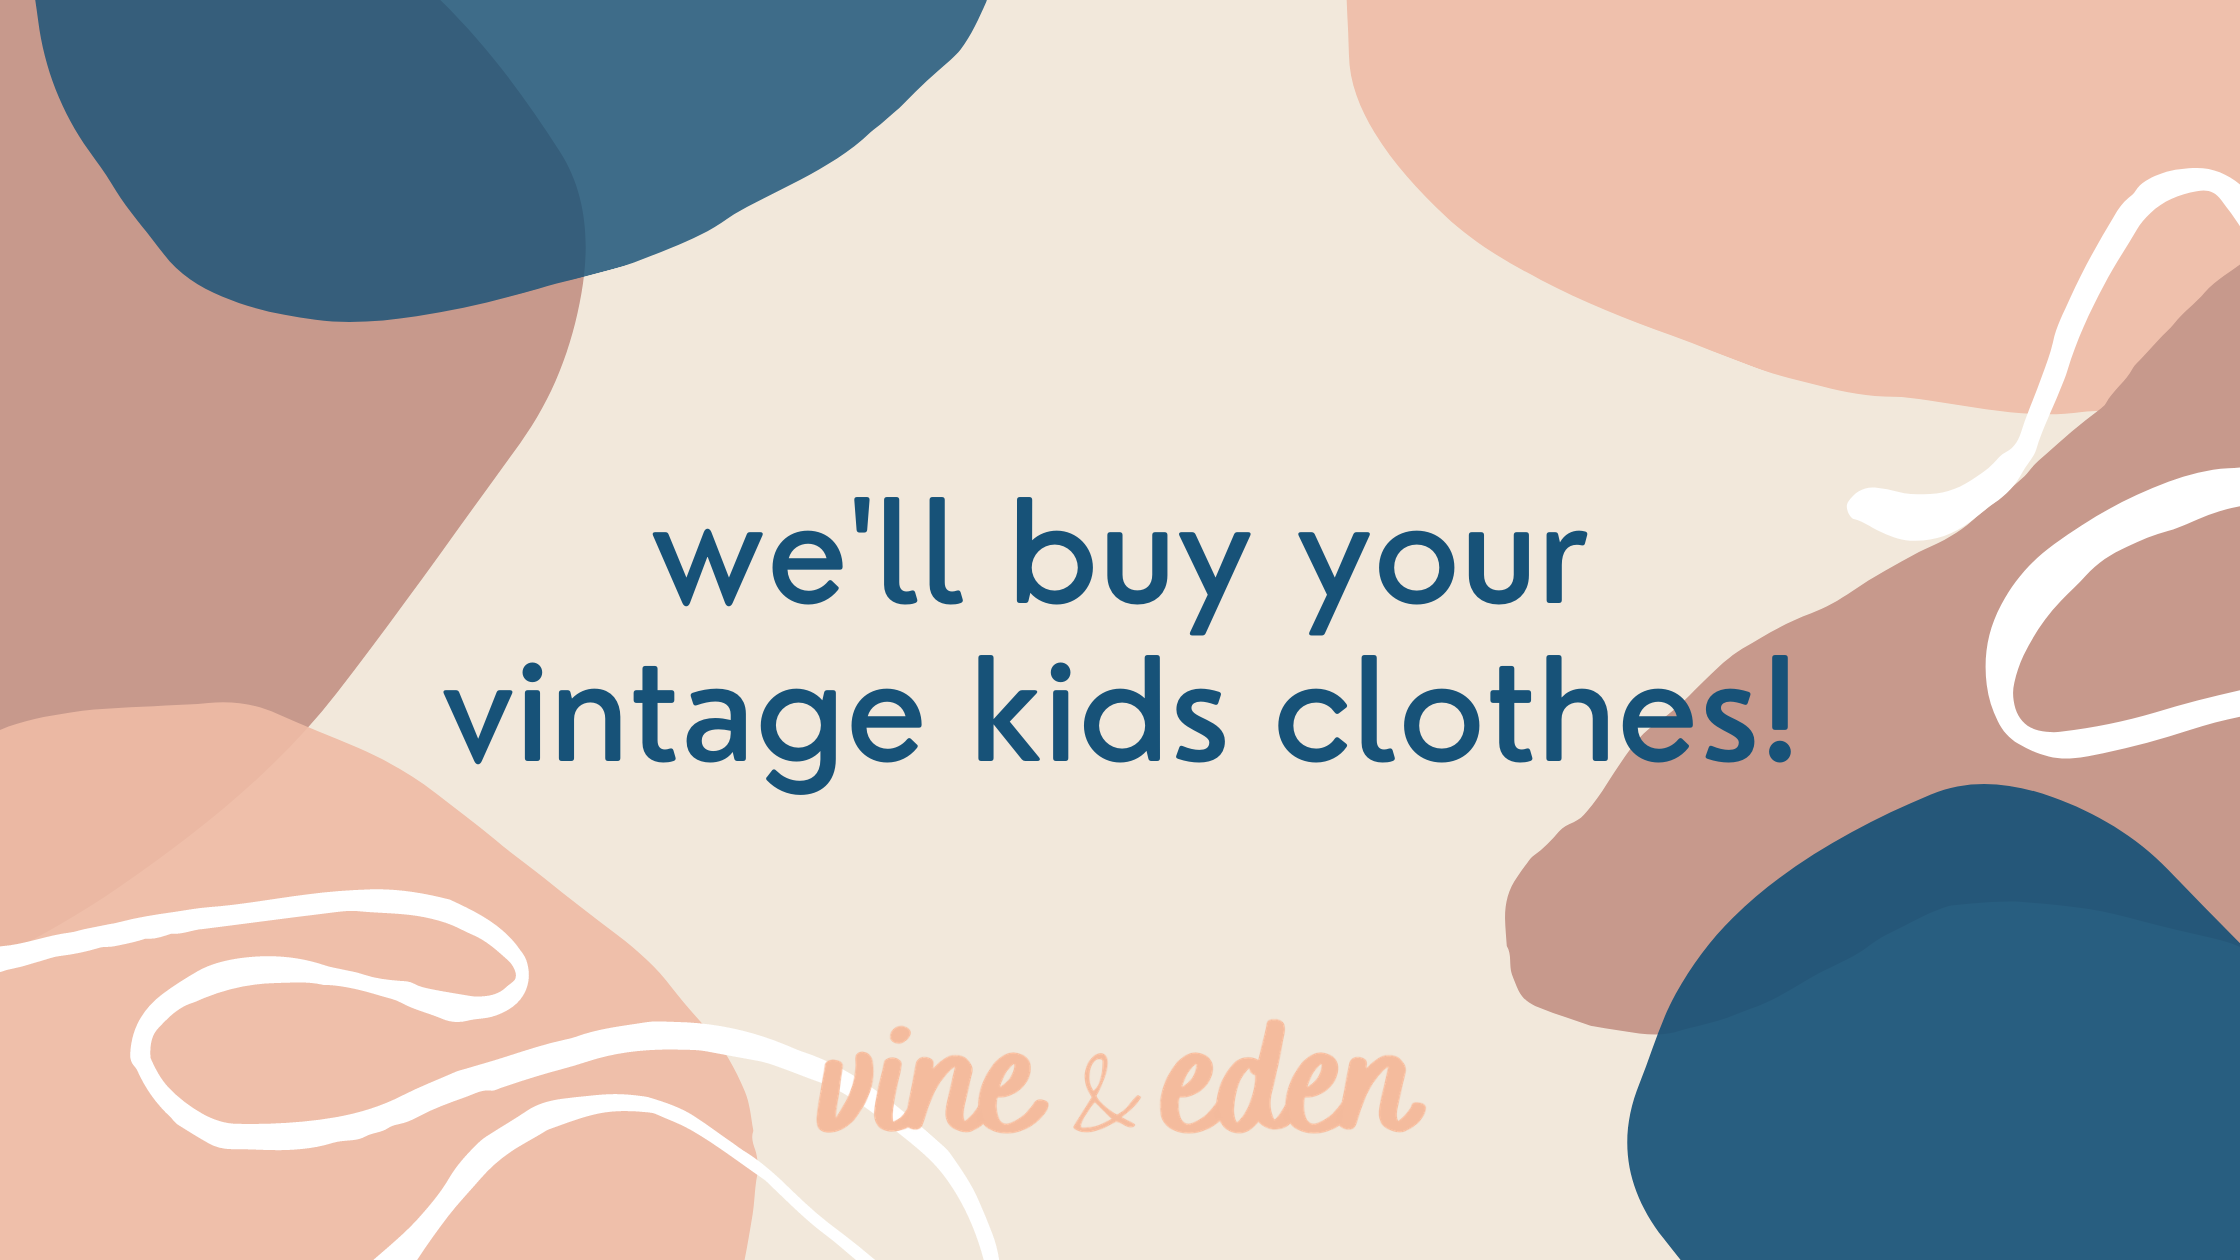 we'll buy your vintage kids clothes!